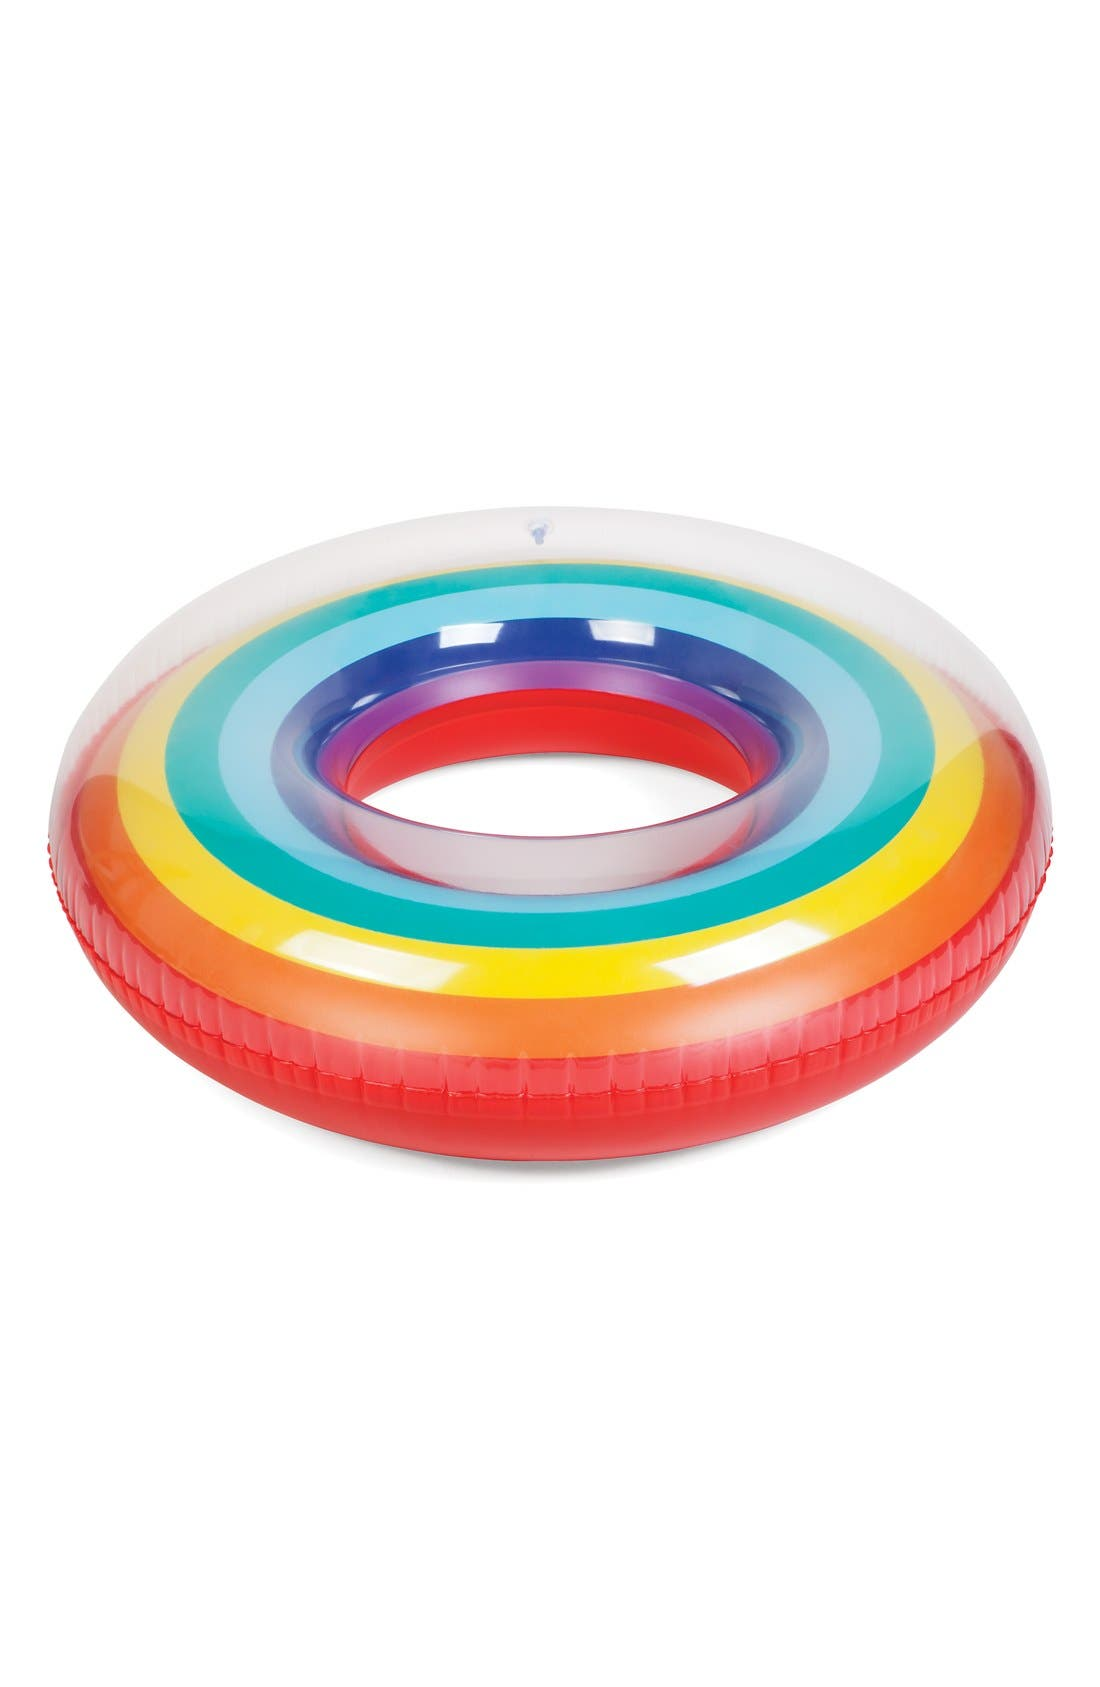 SUNNYLIFE Rainbow Inflatable Pool Ring